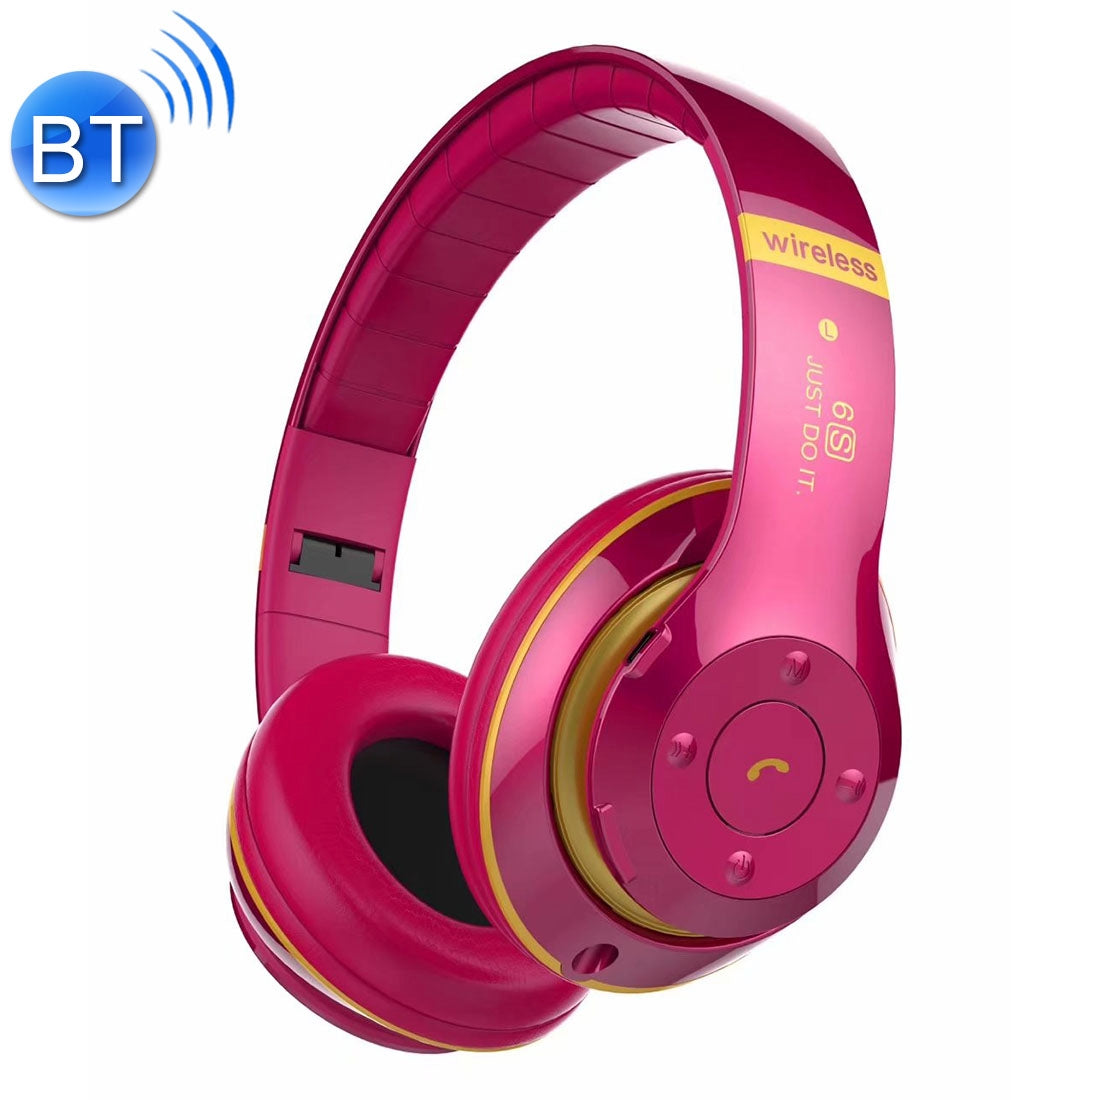 V30 Wireless Bluetooth 4.2 Headphone with Mic & FM & TF Card & Handfree Function, For iPhone, iPad, iPod, Samsung, HTC, Sony, Huawei, Xiaomi and other Audio Devices(Magenta)